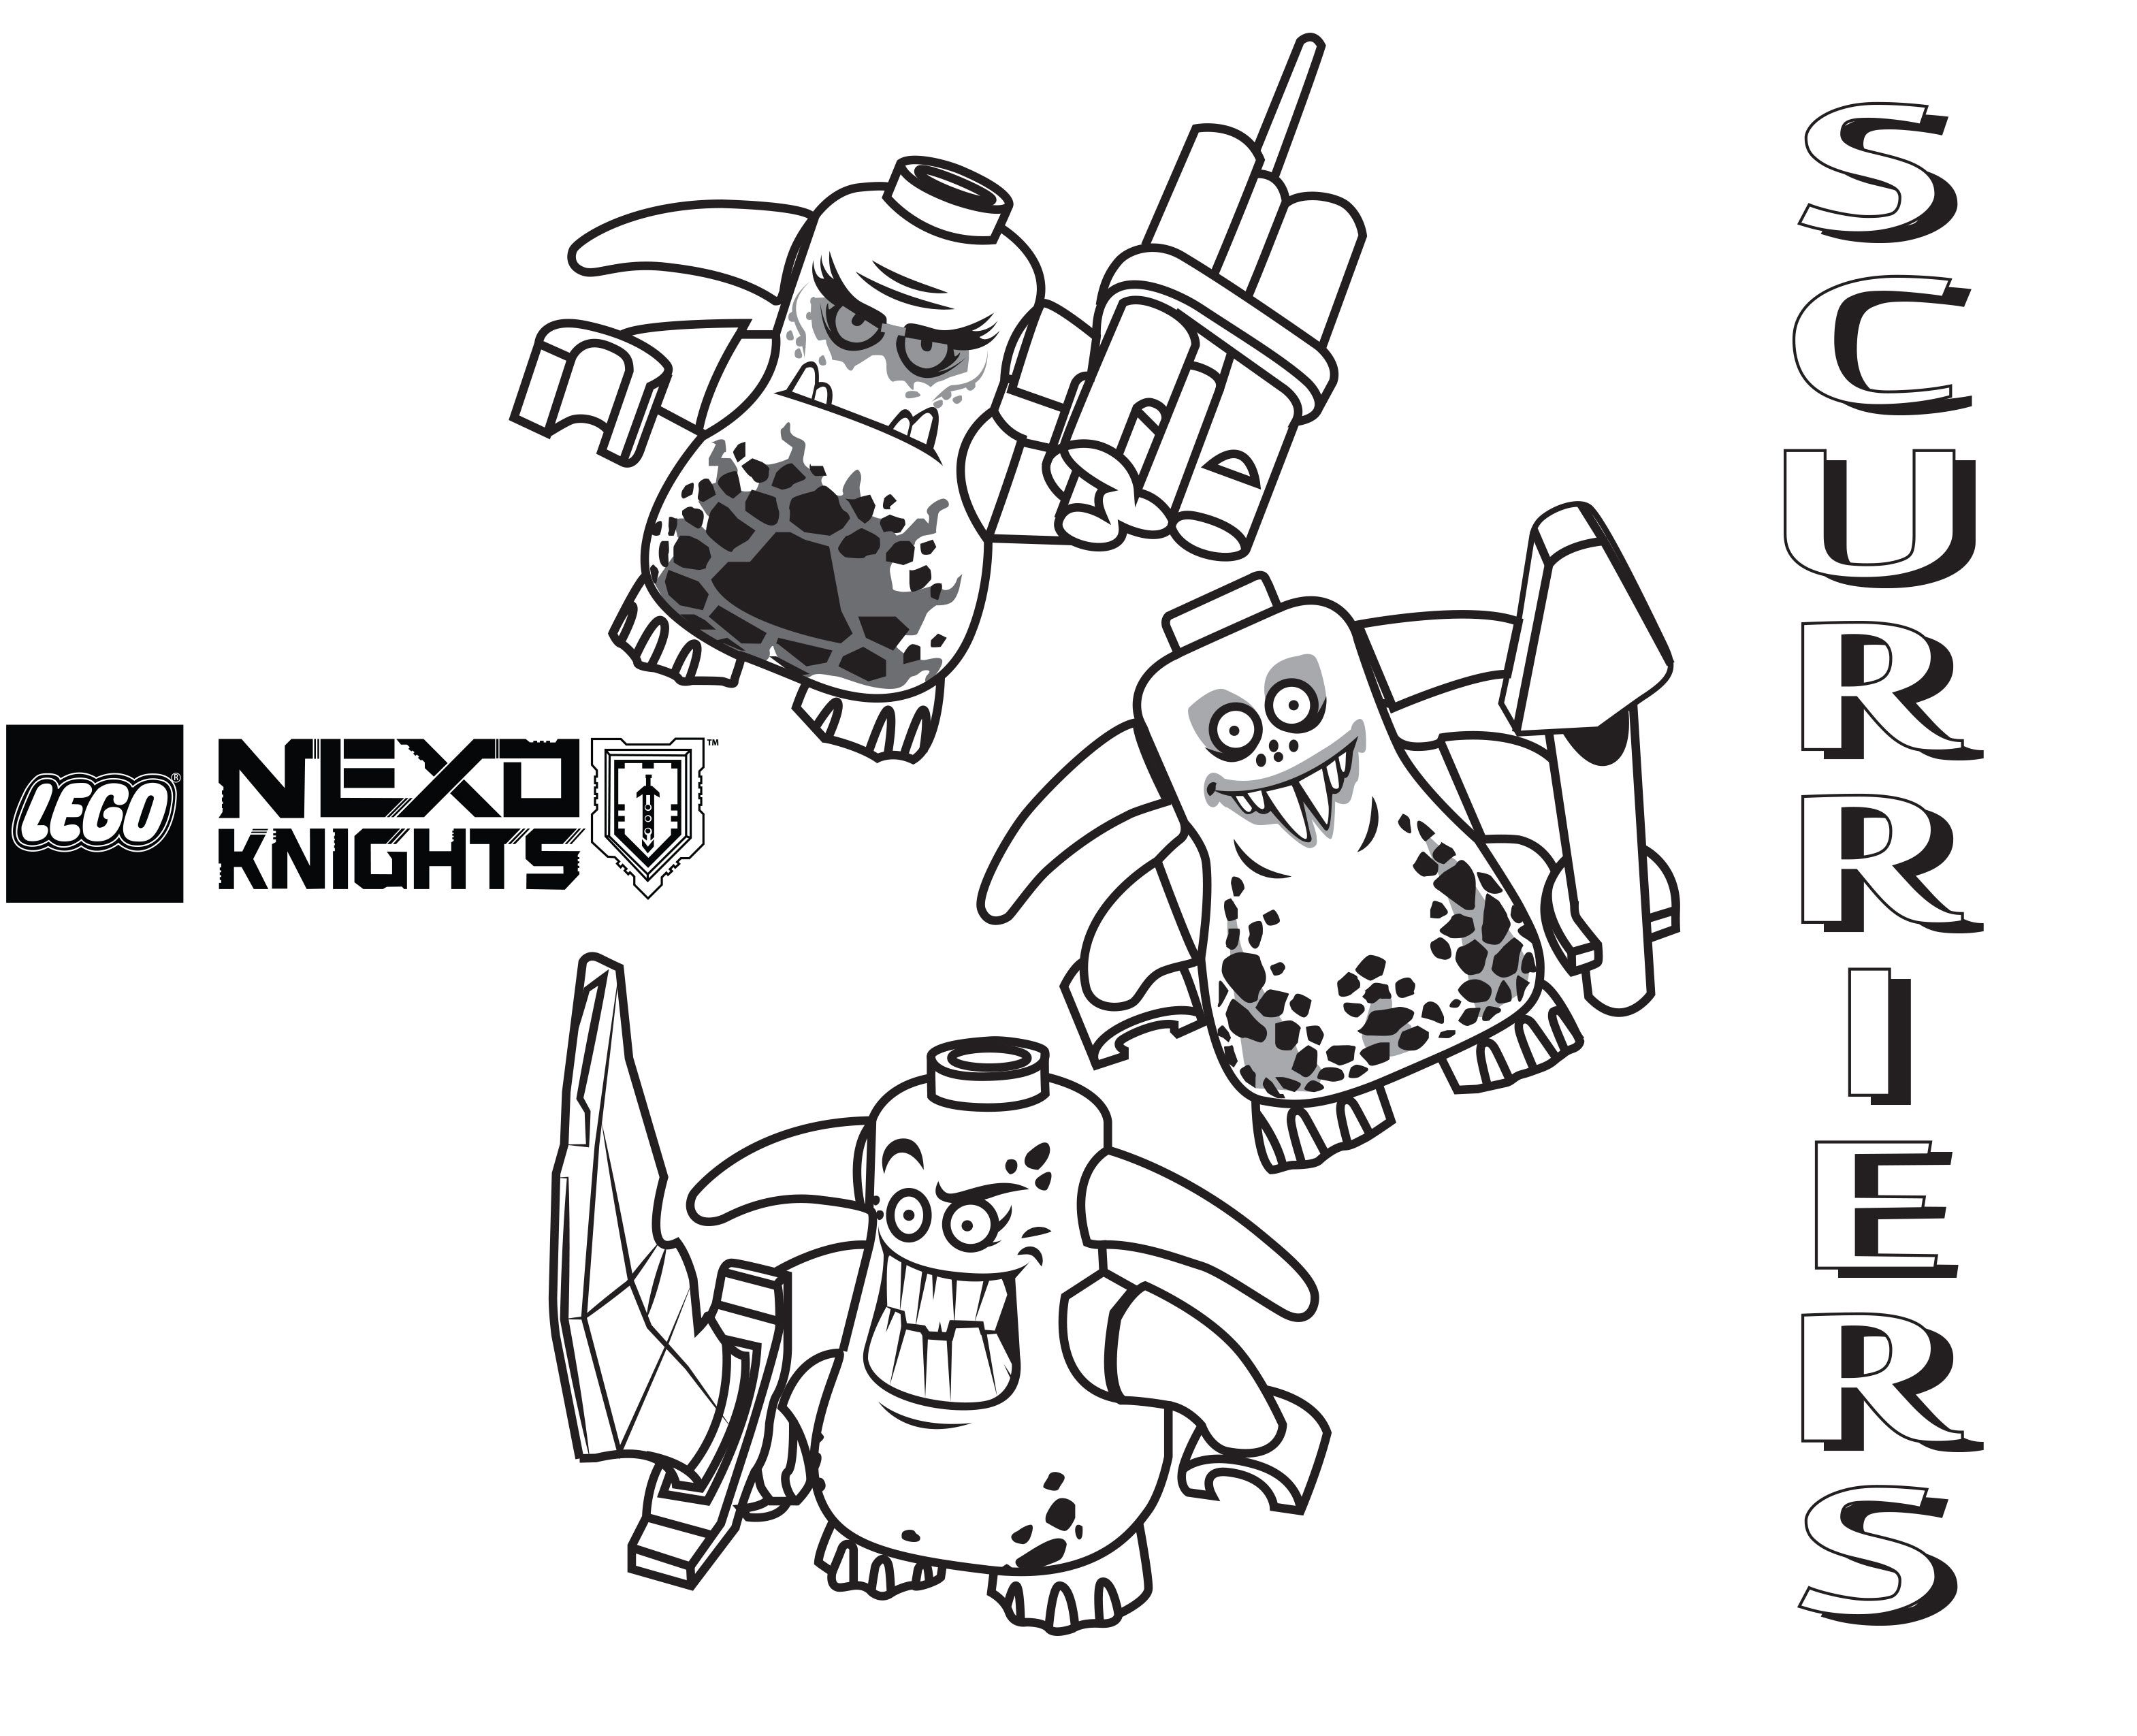 Nexo Knights Monster Ausmalbilder : Lego Nexo Knights Coloring Pages Free Printable Lego Nexo Knights